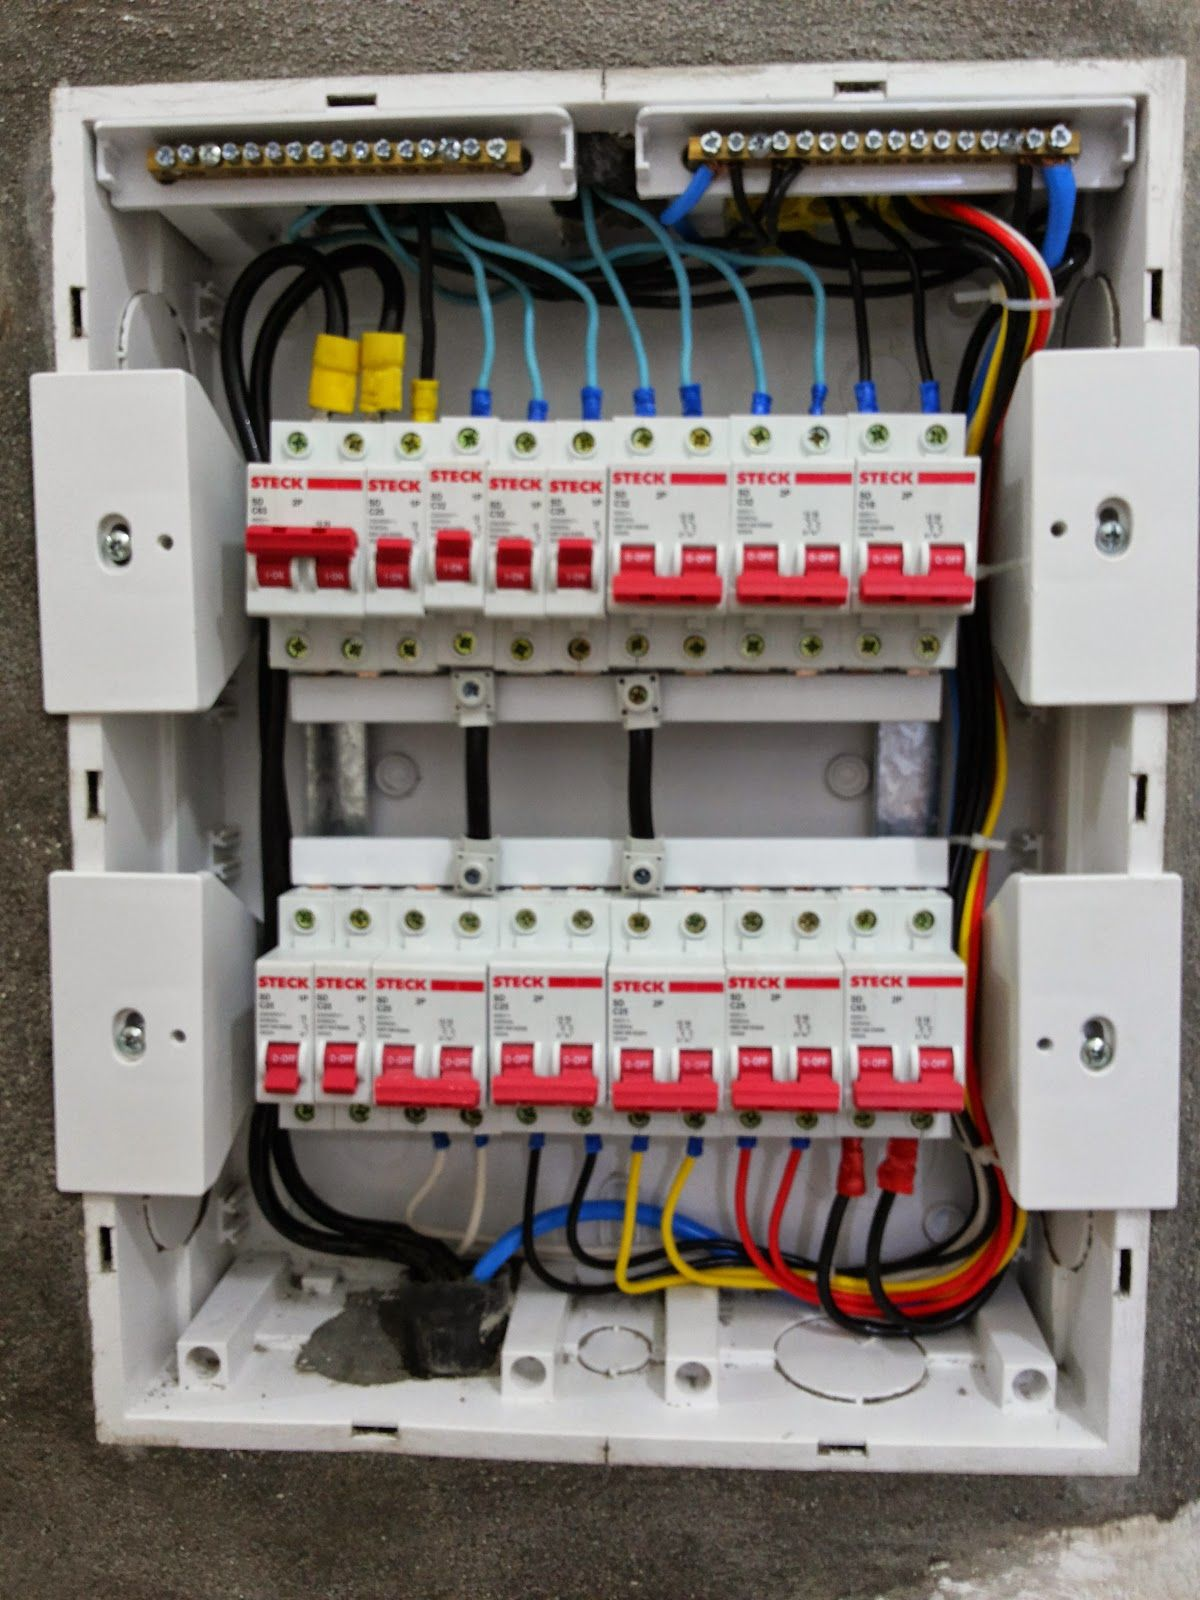 Imagem Relacionada Esquema Elctrico In 2018 Pinterest Wiring Distribution Board